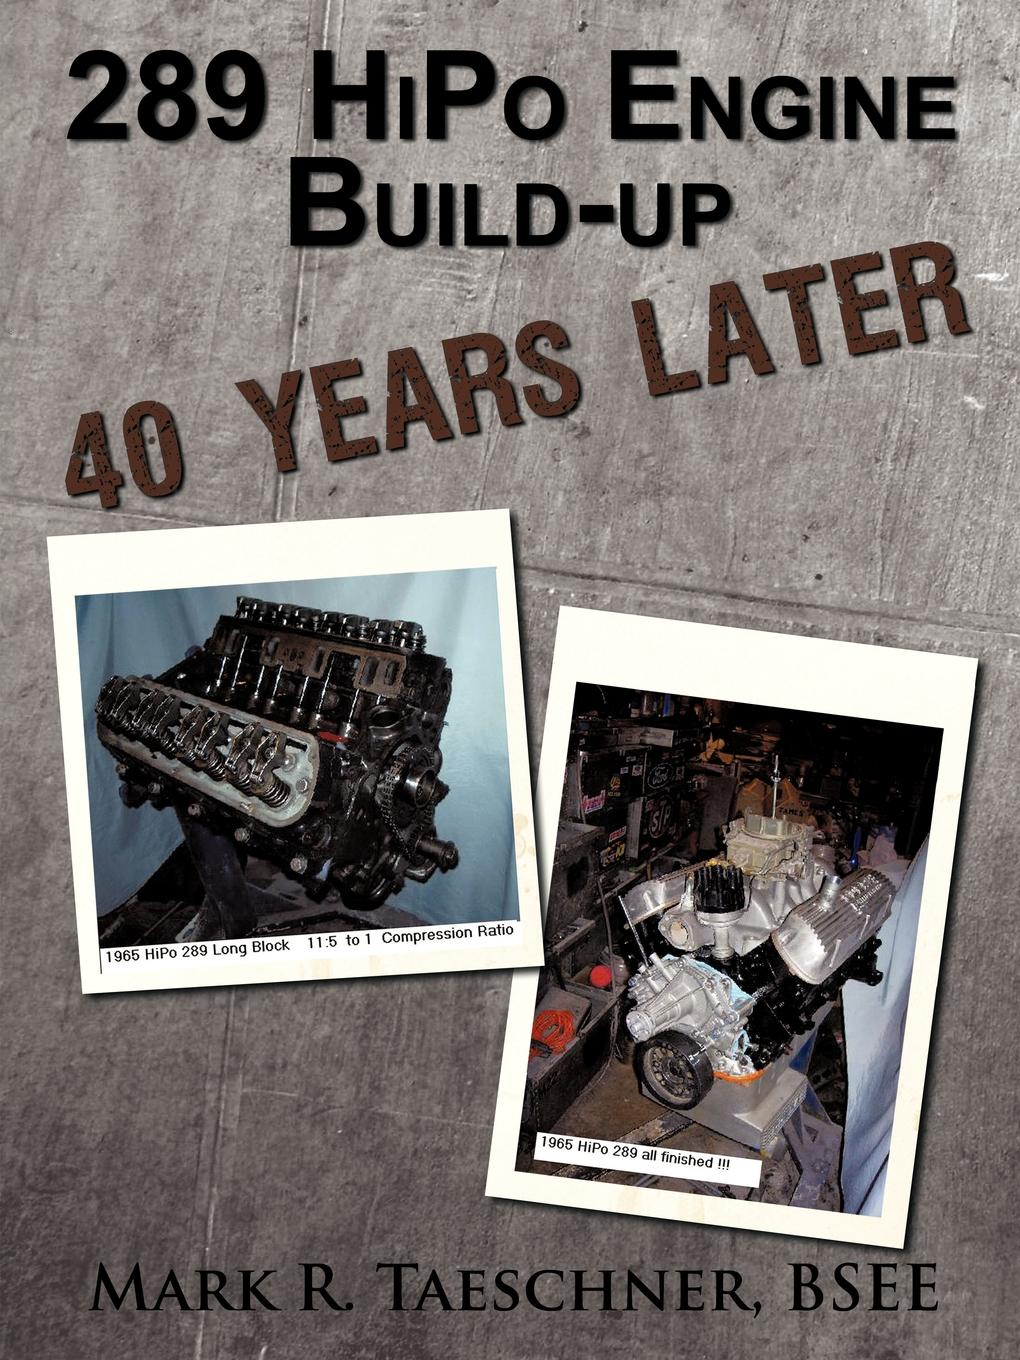 Mark R. Taeschner BSEE 289 HiPo Engine Build-up 40 Years Later